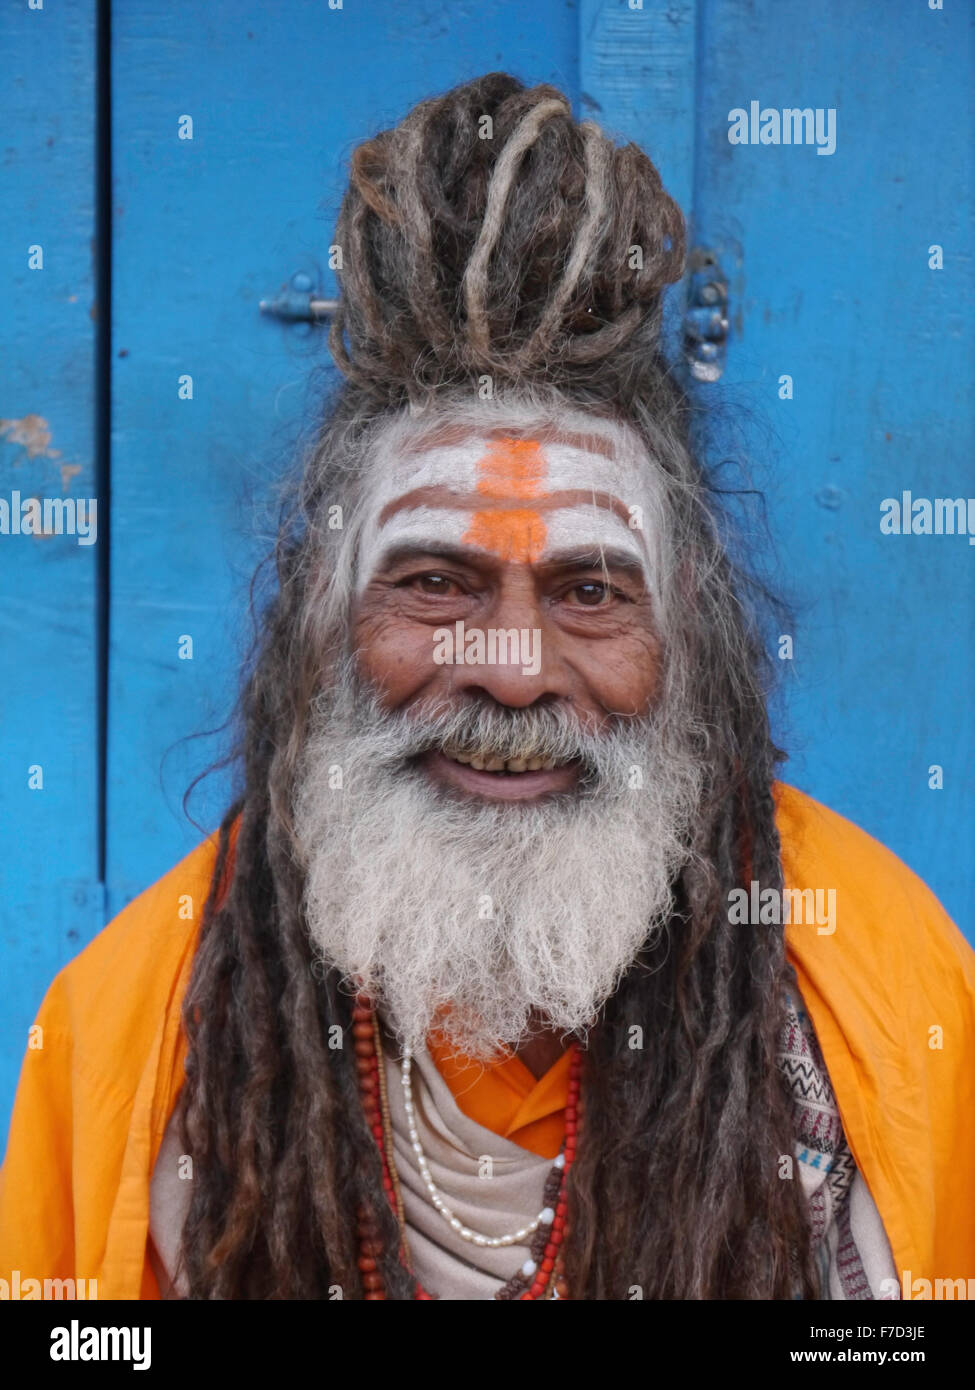 Portrait of a Sadu . Smiling image of holy man dressed in vivid contrasting  colours of orange and blue . - Stock Image